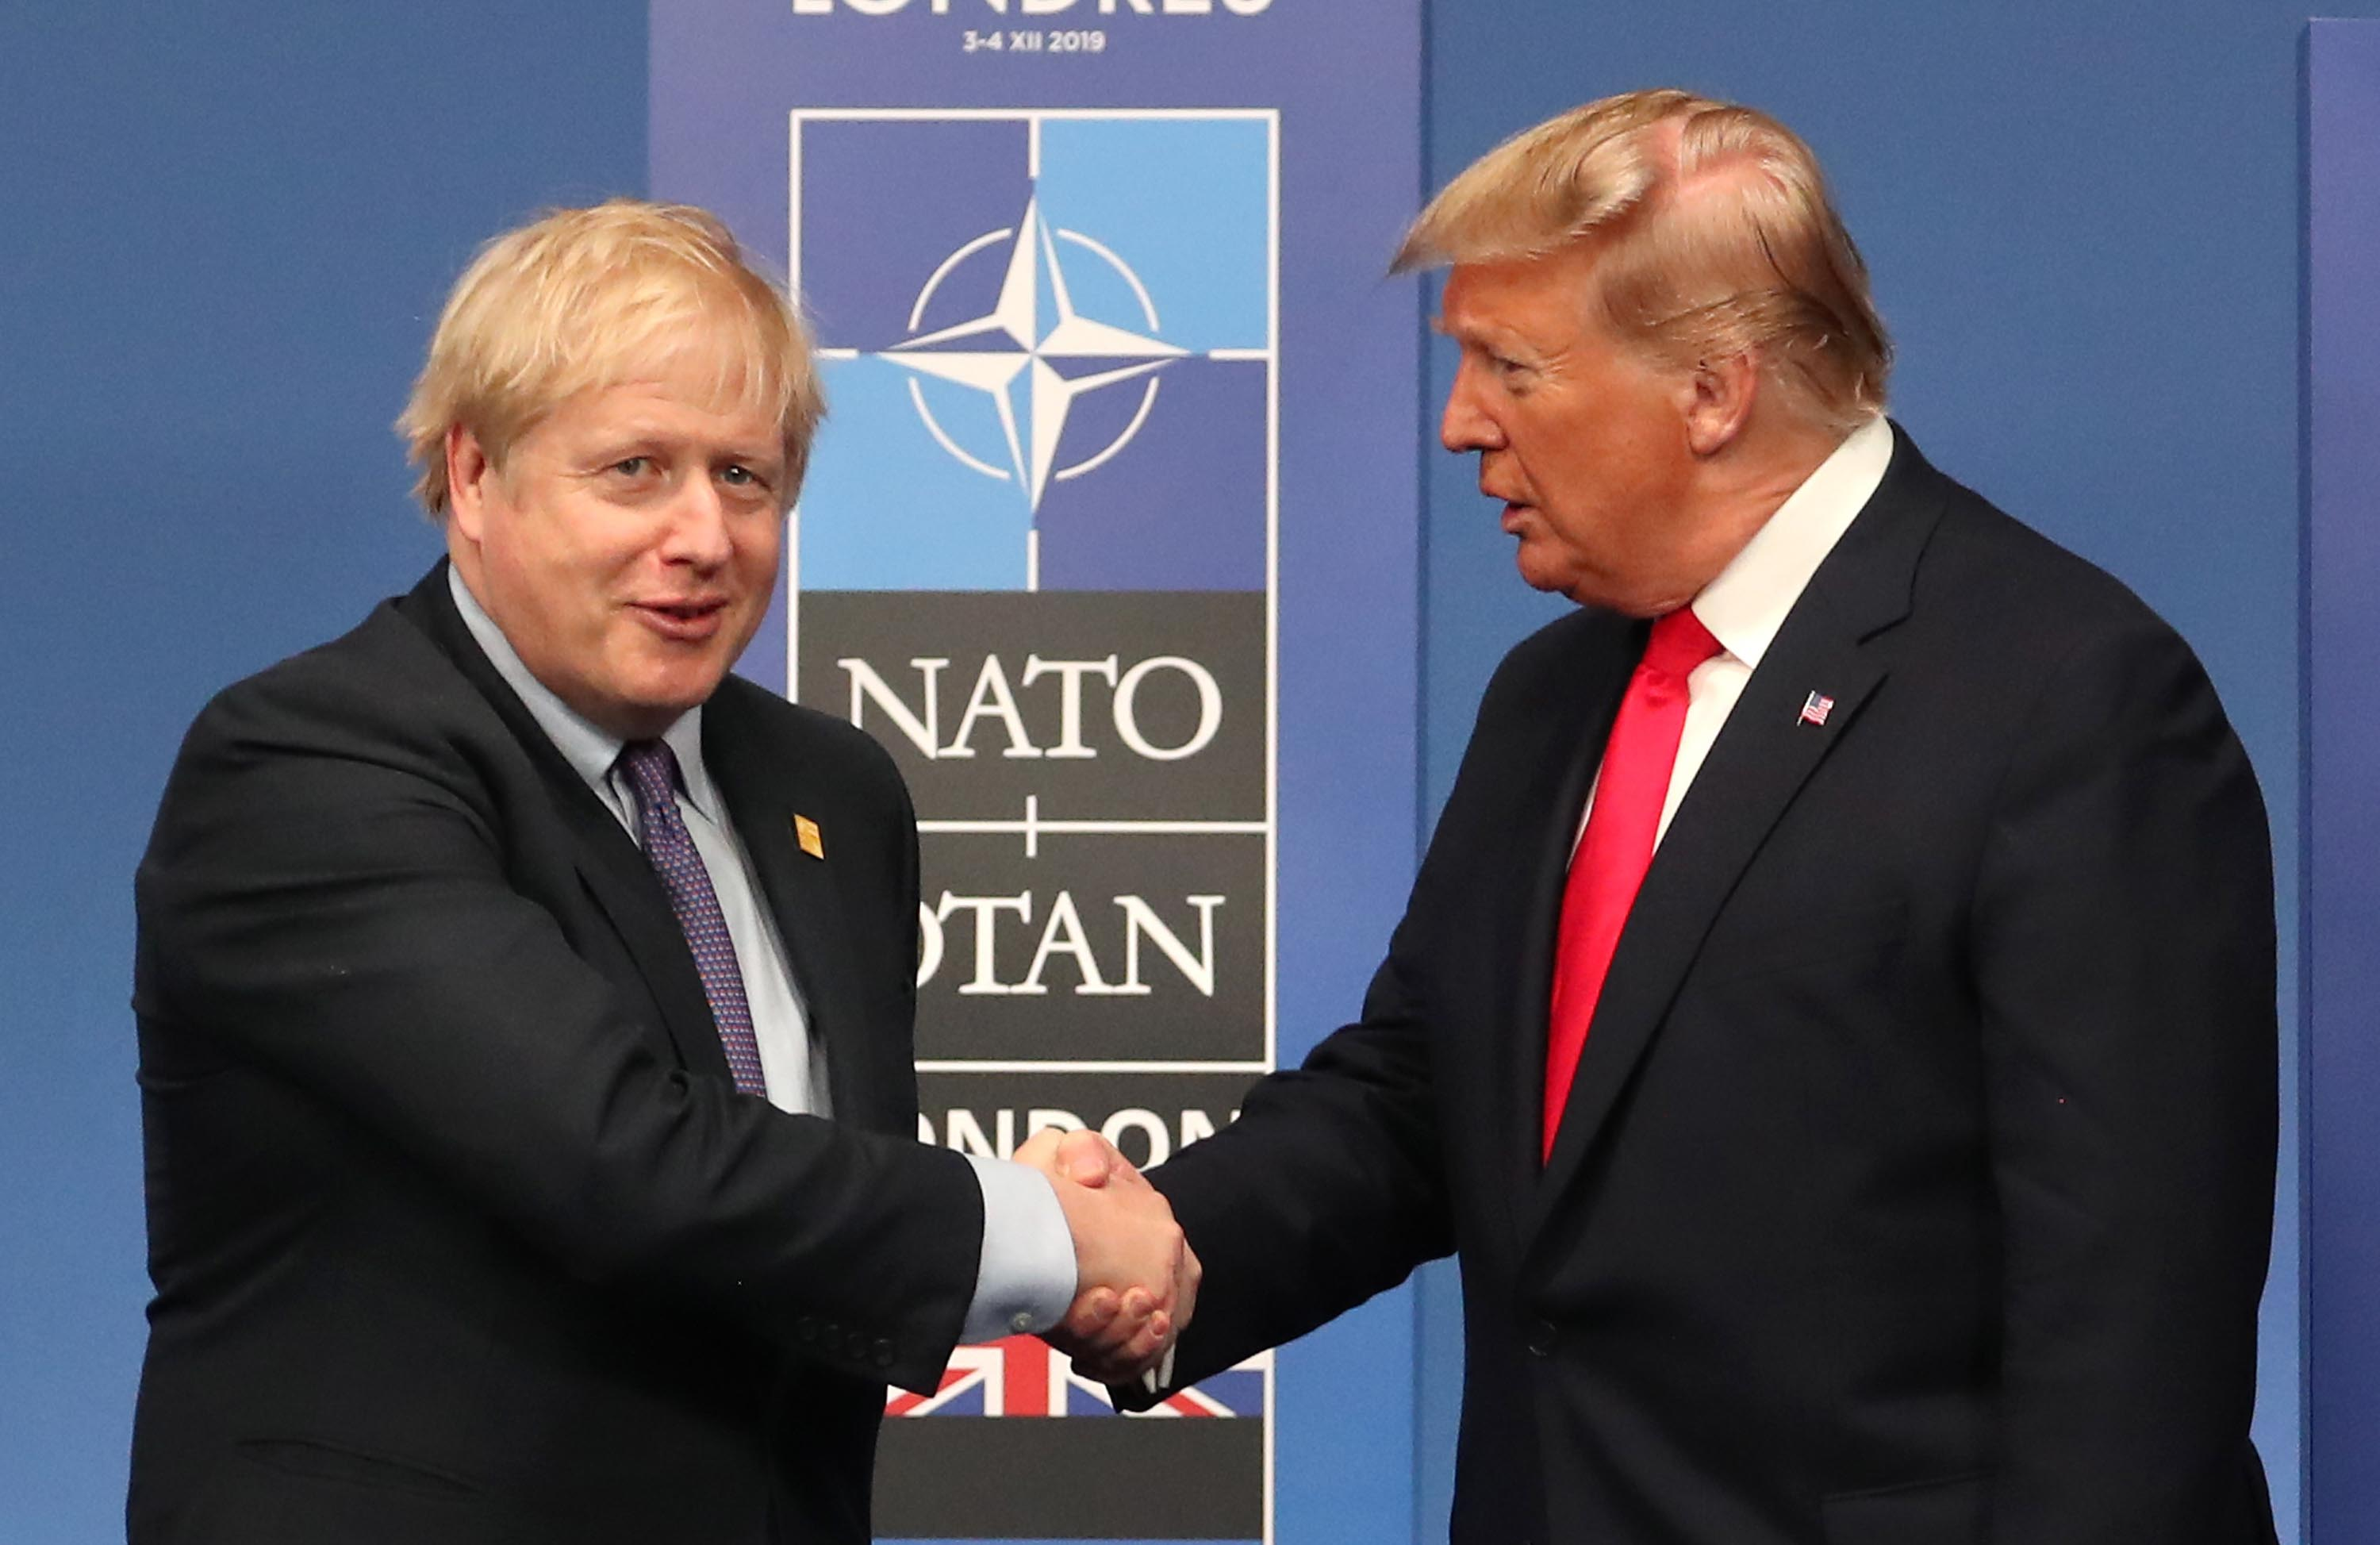 British Prime Minister Boris Johnson shakes hands with US President Donald Trump during the NATO heads of government summit on December 4, in Watford, England. Photo: Steve Parsons/WPA Pool/Getty Images